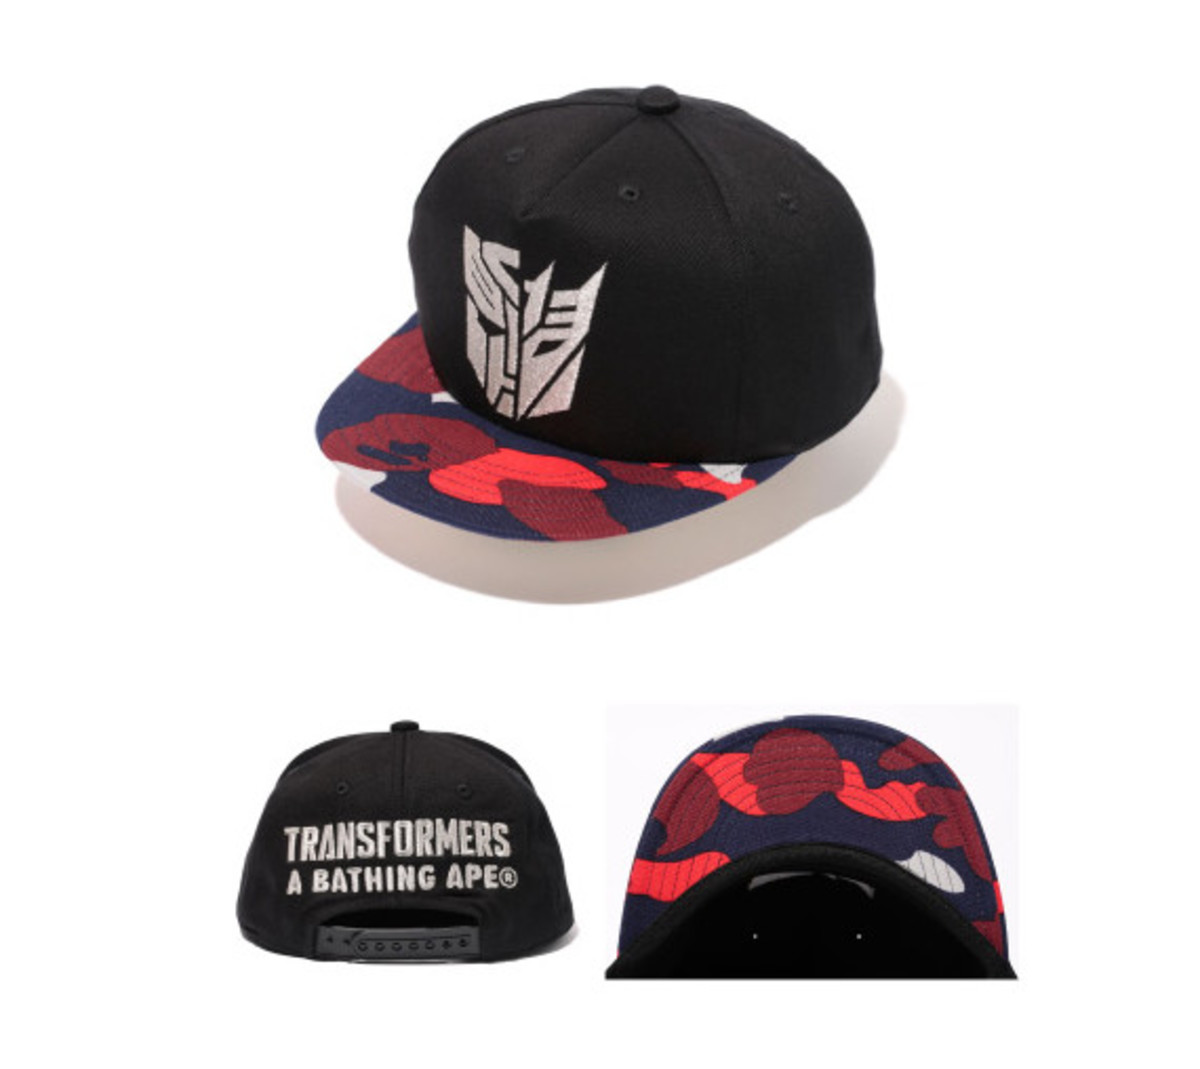 a-bathing-ape-transformers-fall-2014-capsule-collection-08